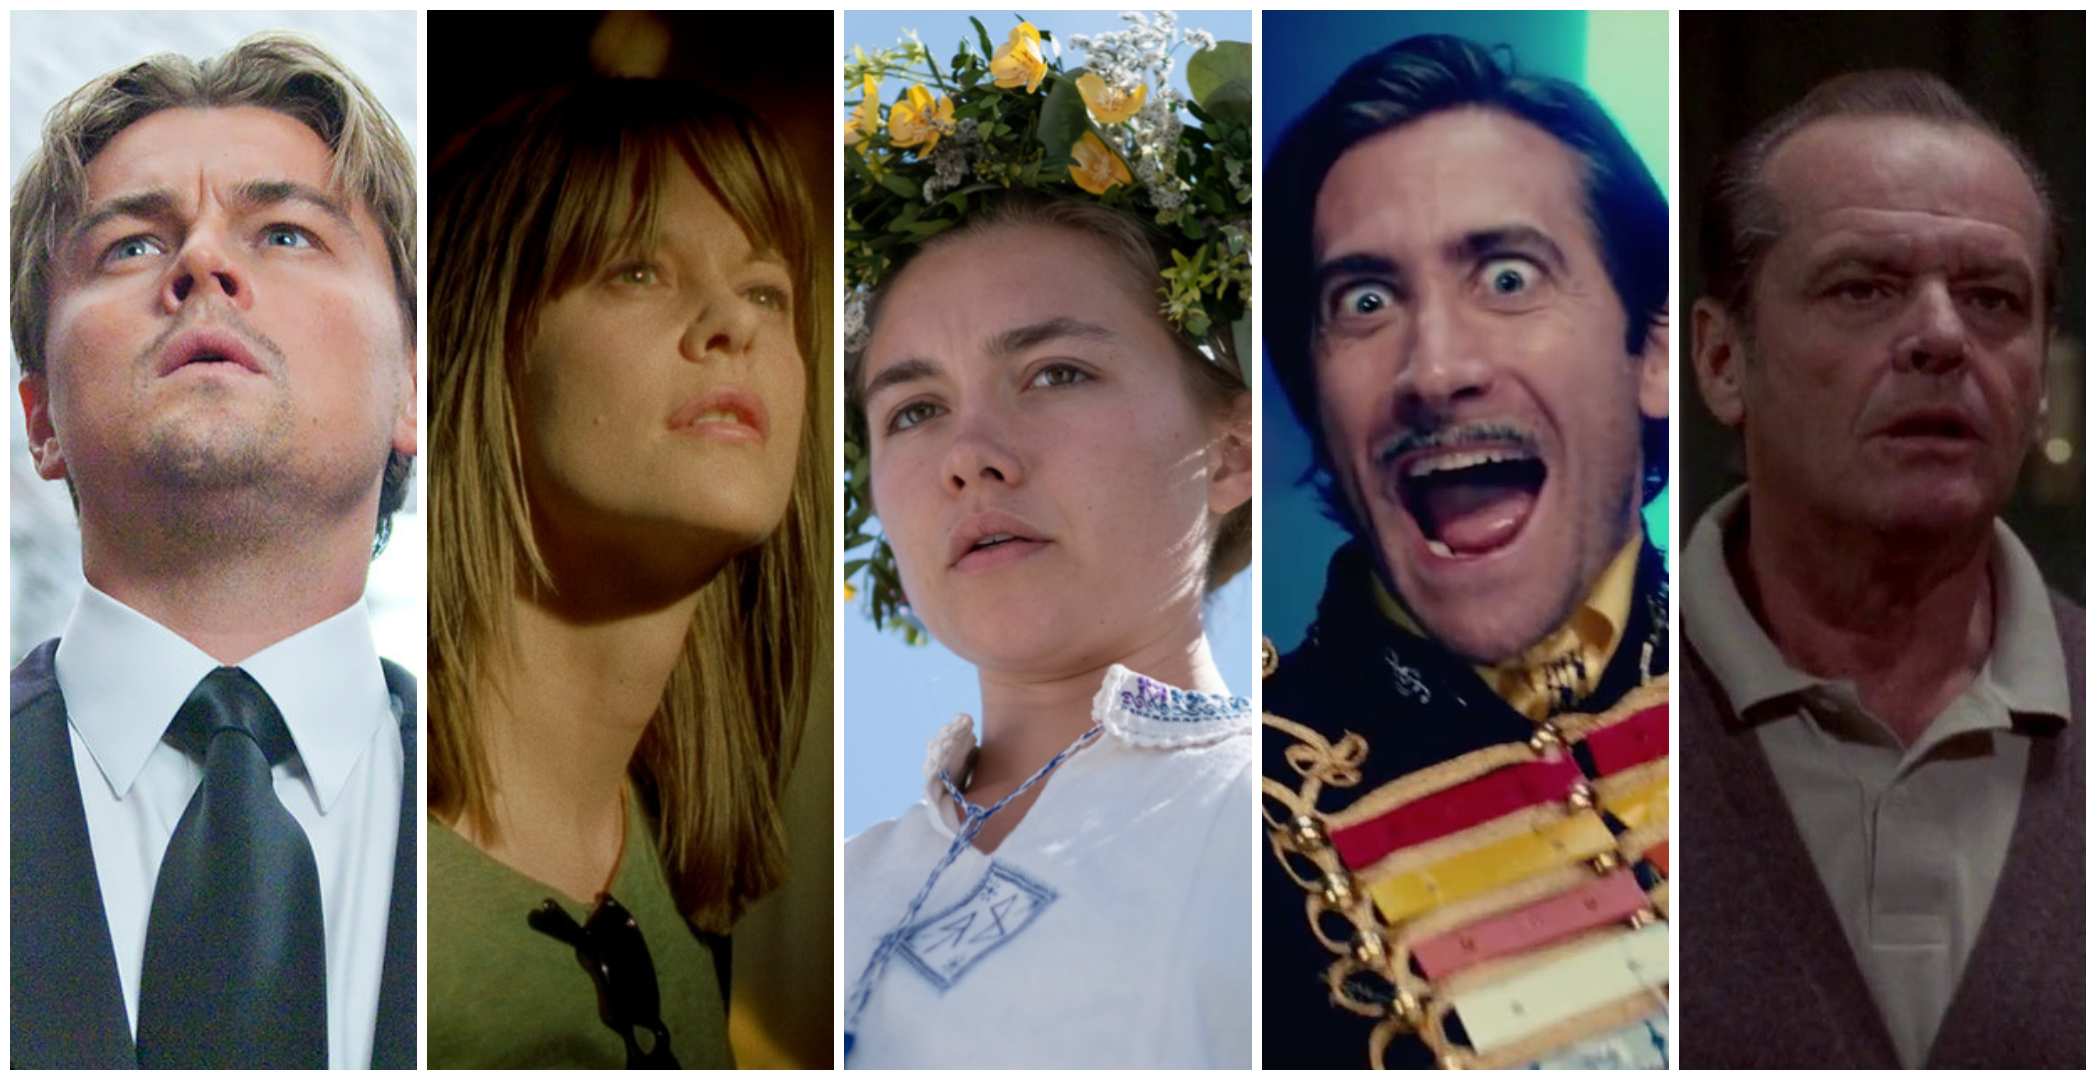 Now Stream This: 'Midsommar', 'Inception', 'Catch Me If You Can', 'Donnie Brasco', and More